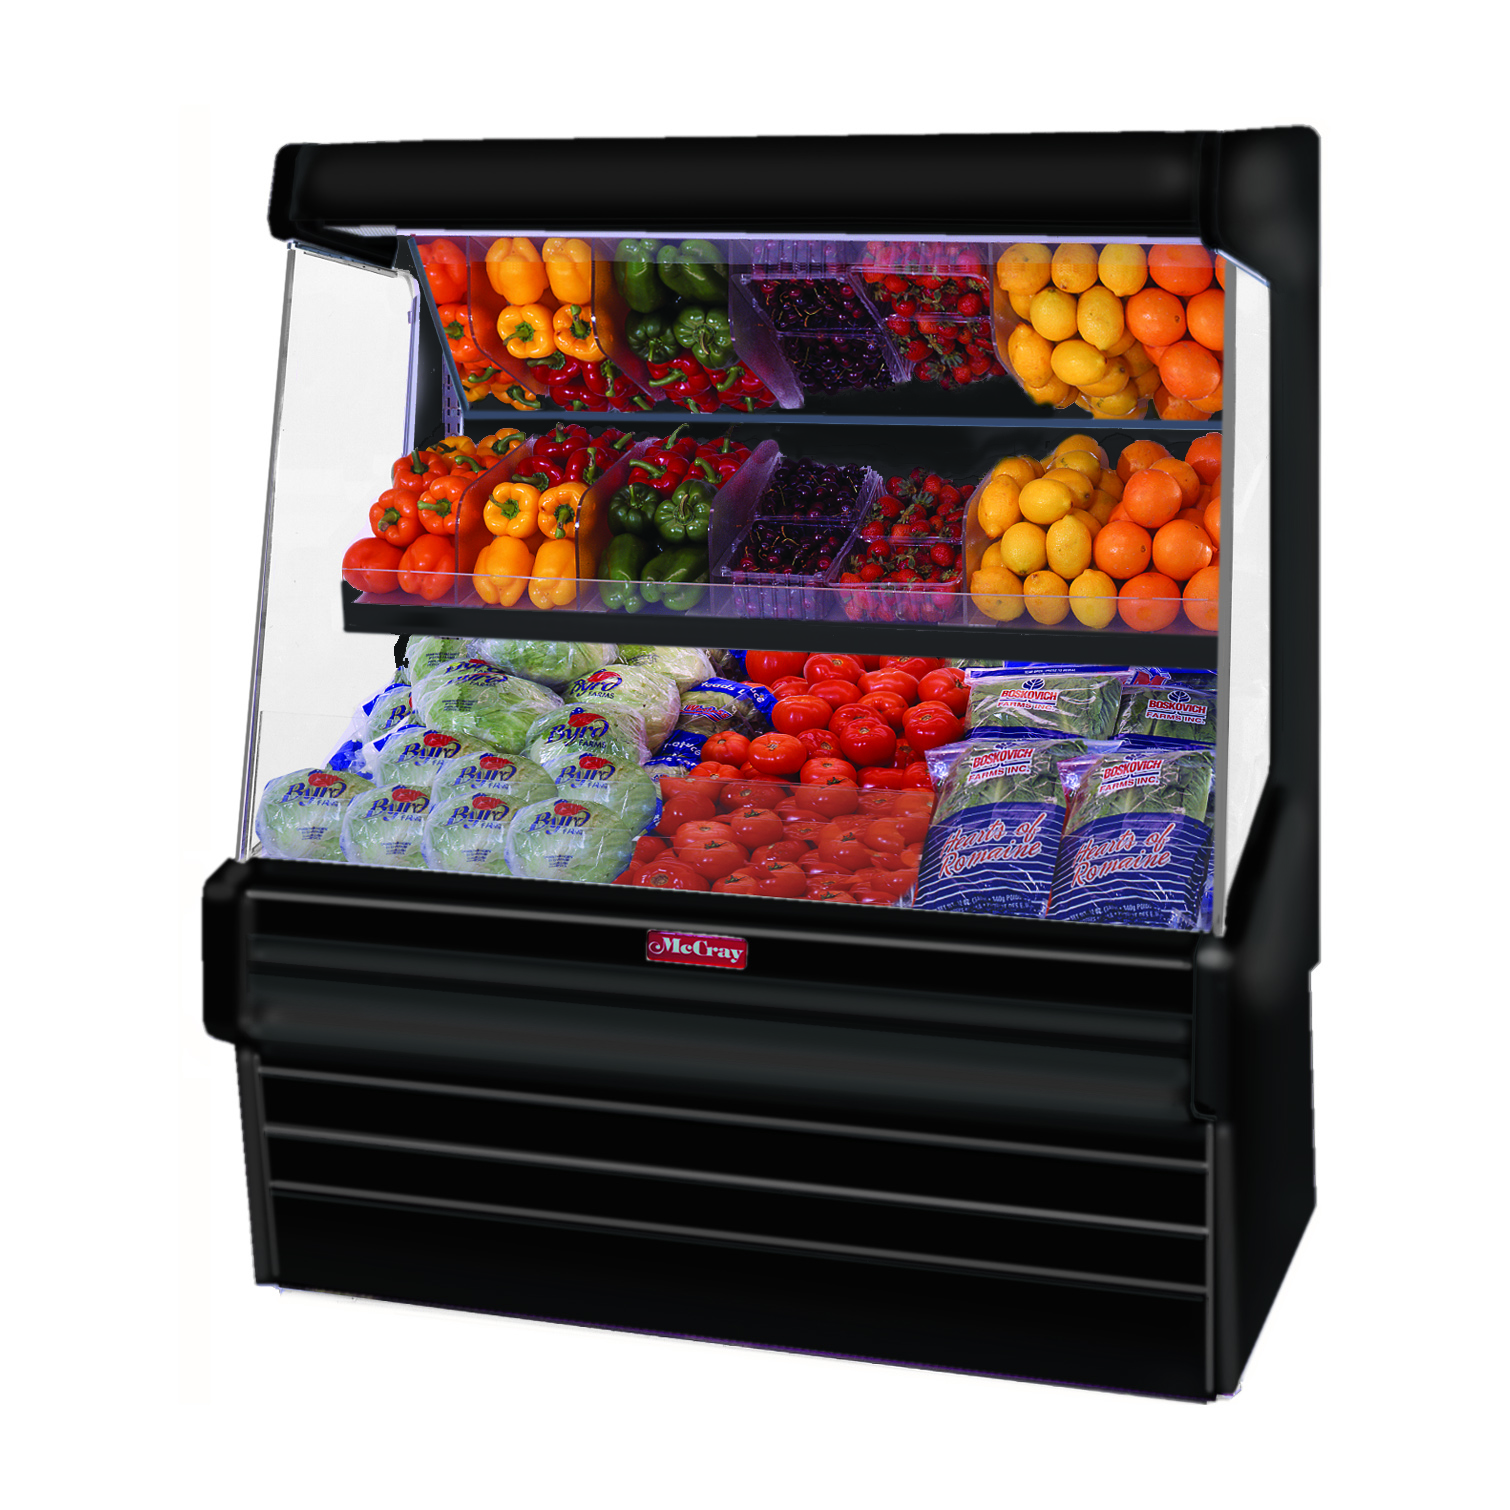 Howard-McCray SC-OP30E-4L-B-LED display case, produce